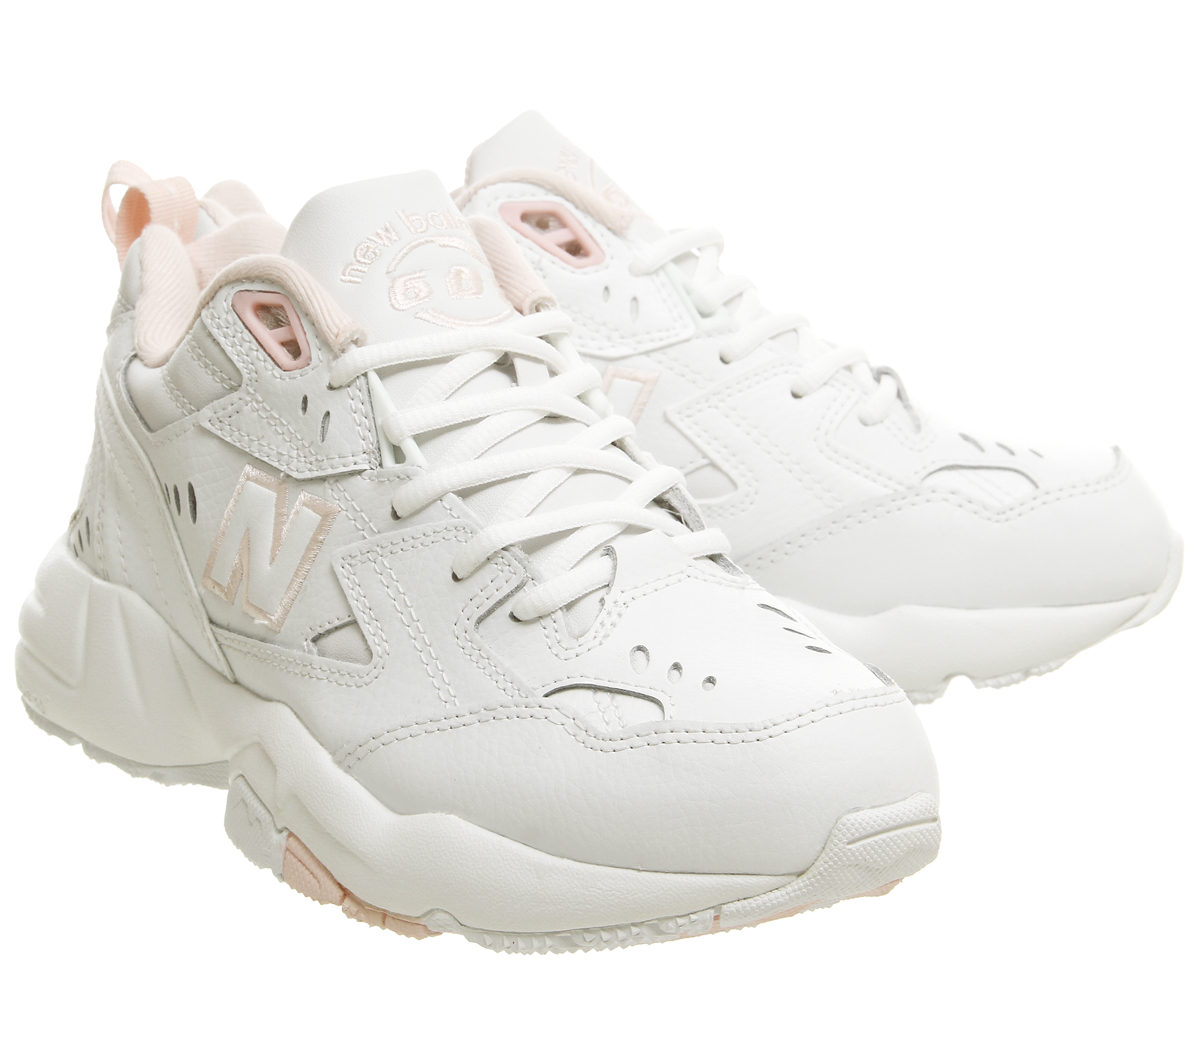 c313eb90b30 Womens New Balance 608 Trainers Cream Pink Trainers Shoes